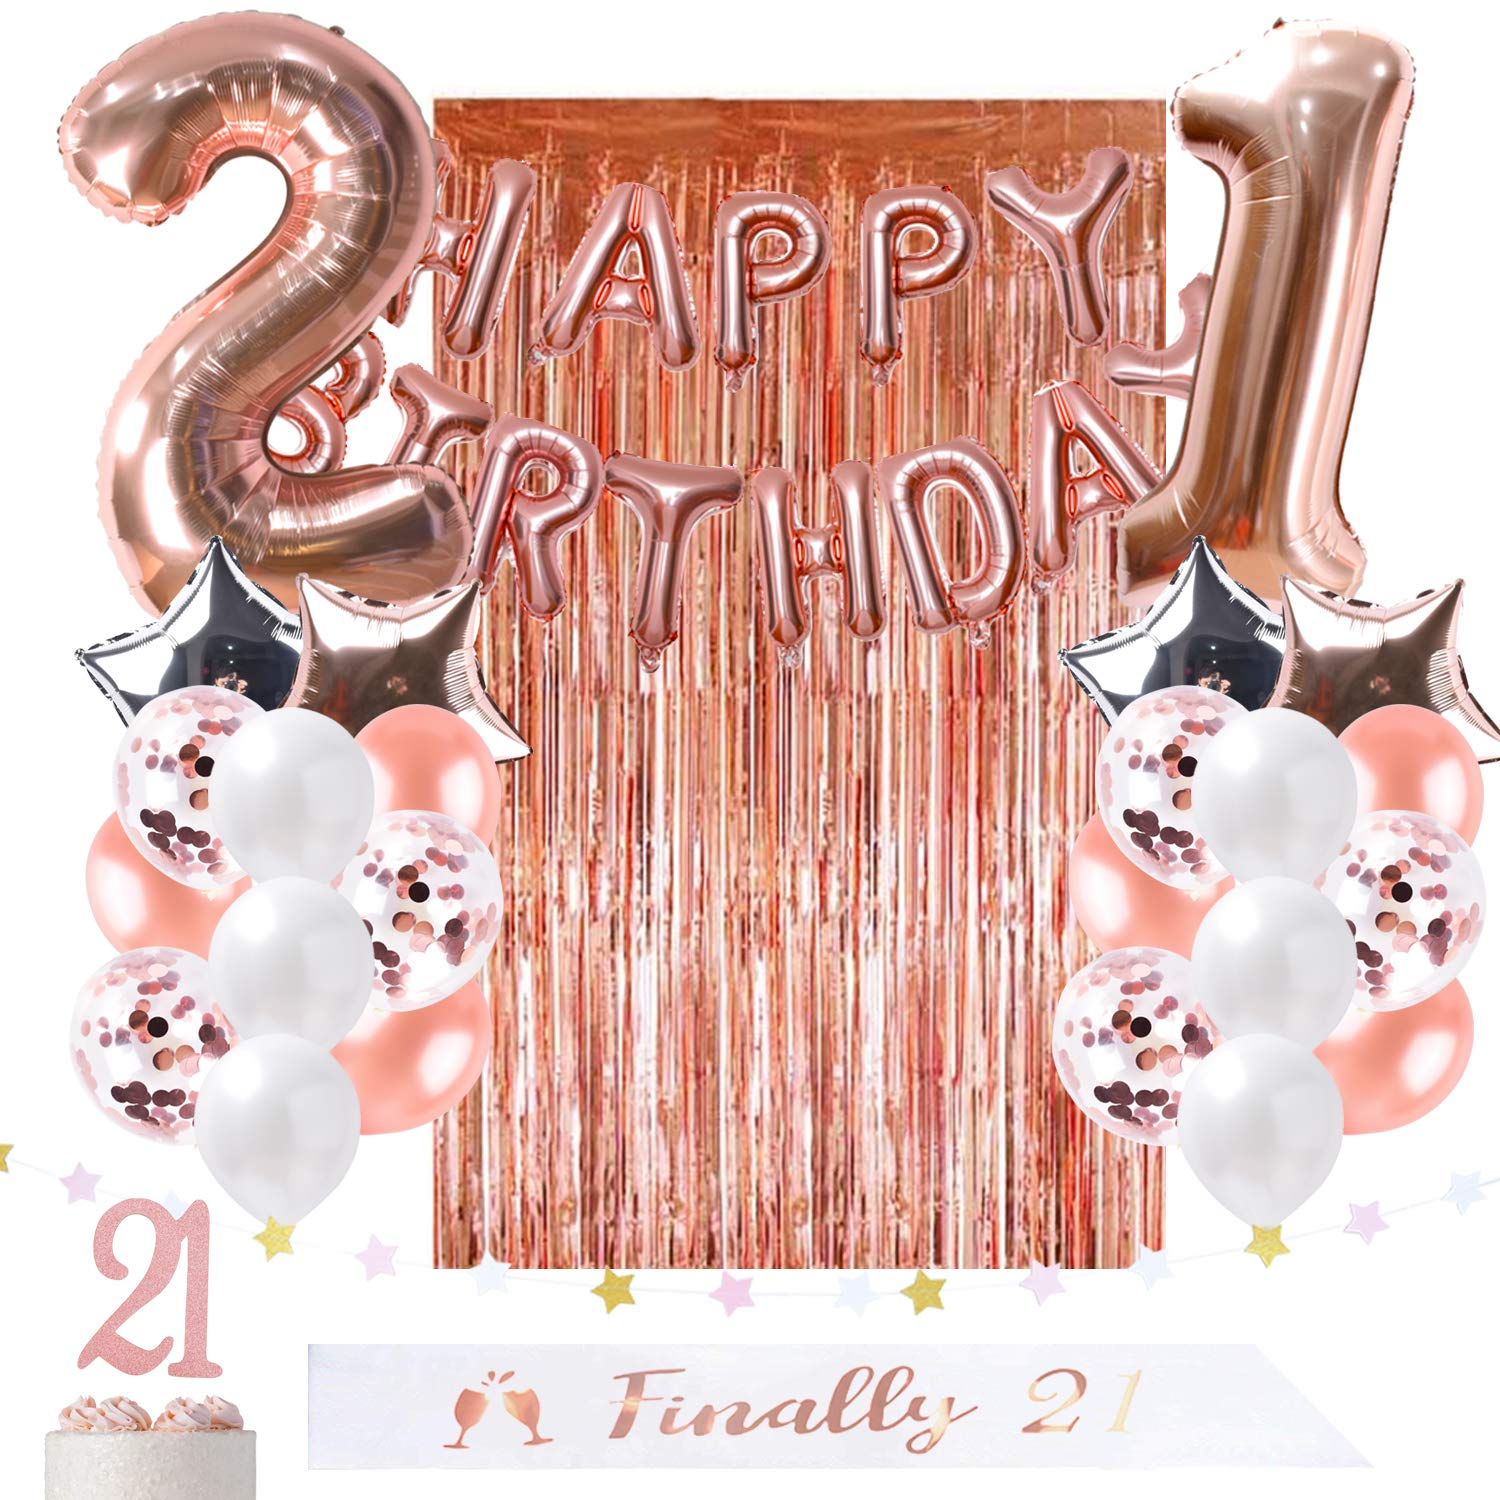 ZLJQ 21st Birthday Party Decorations Rose Gold Balloons Table Runner